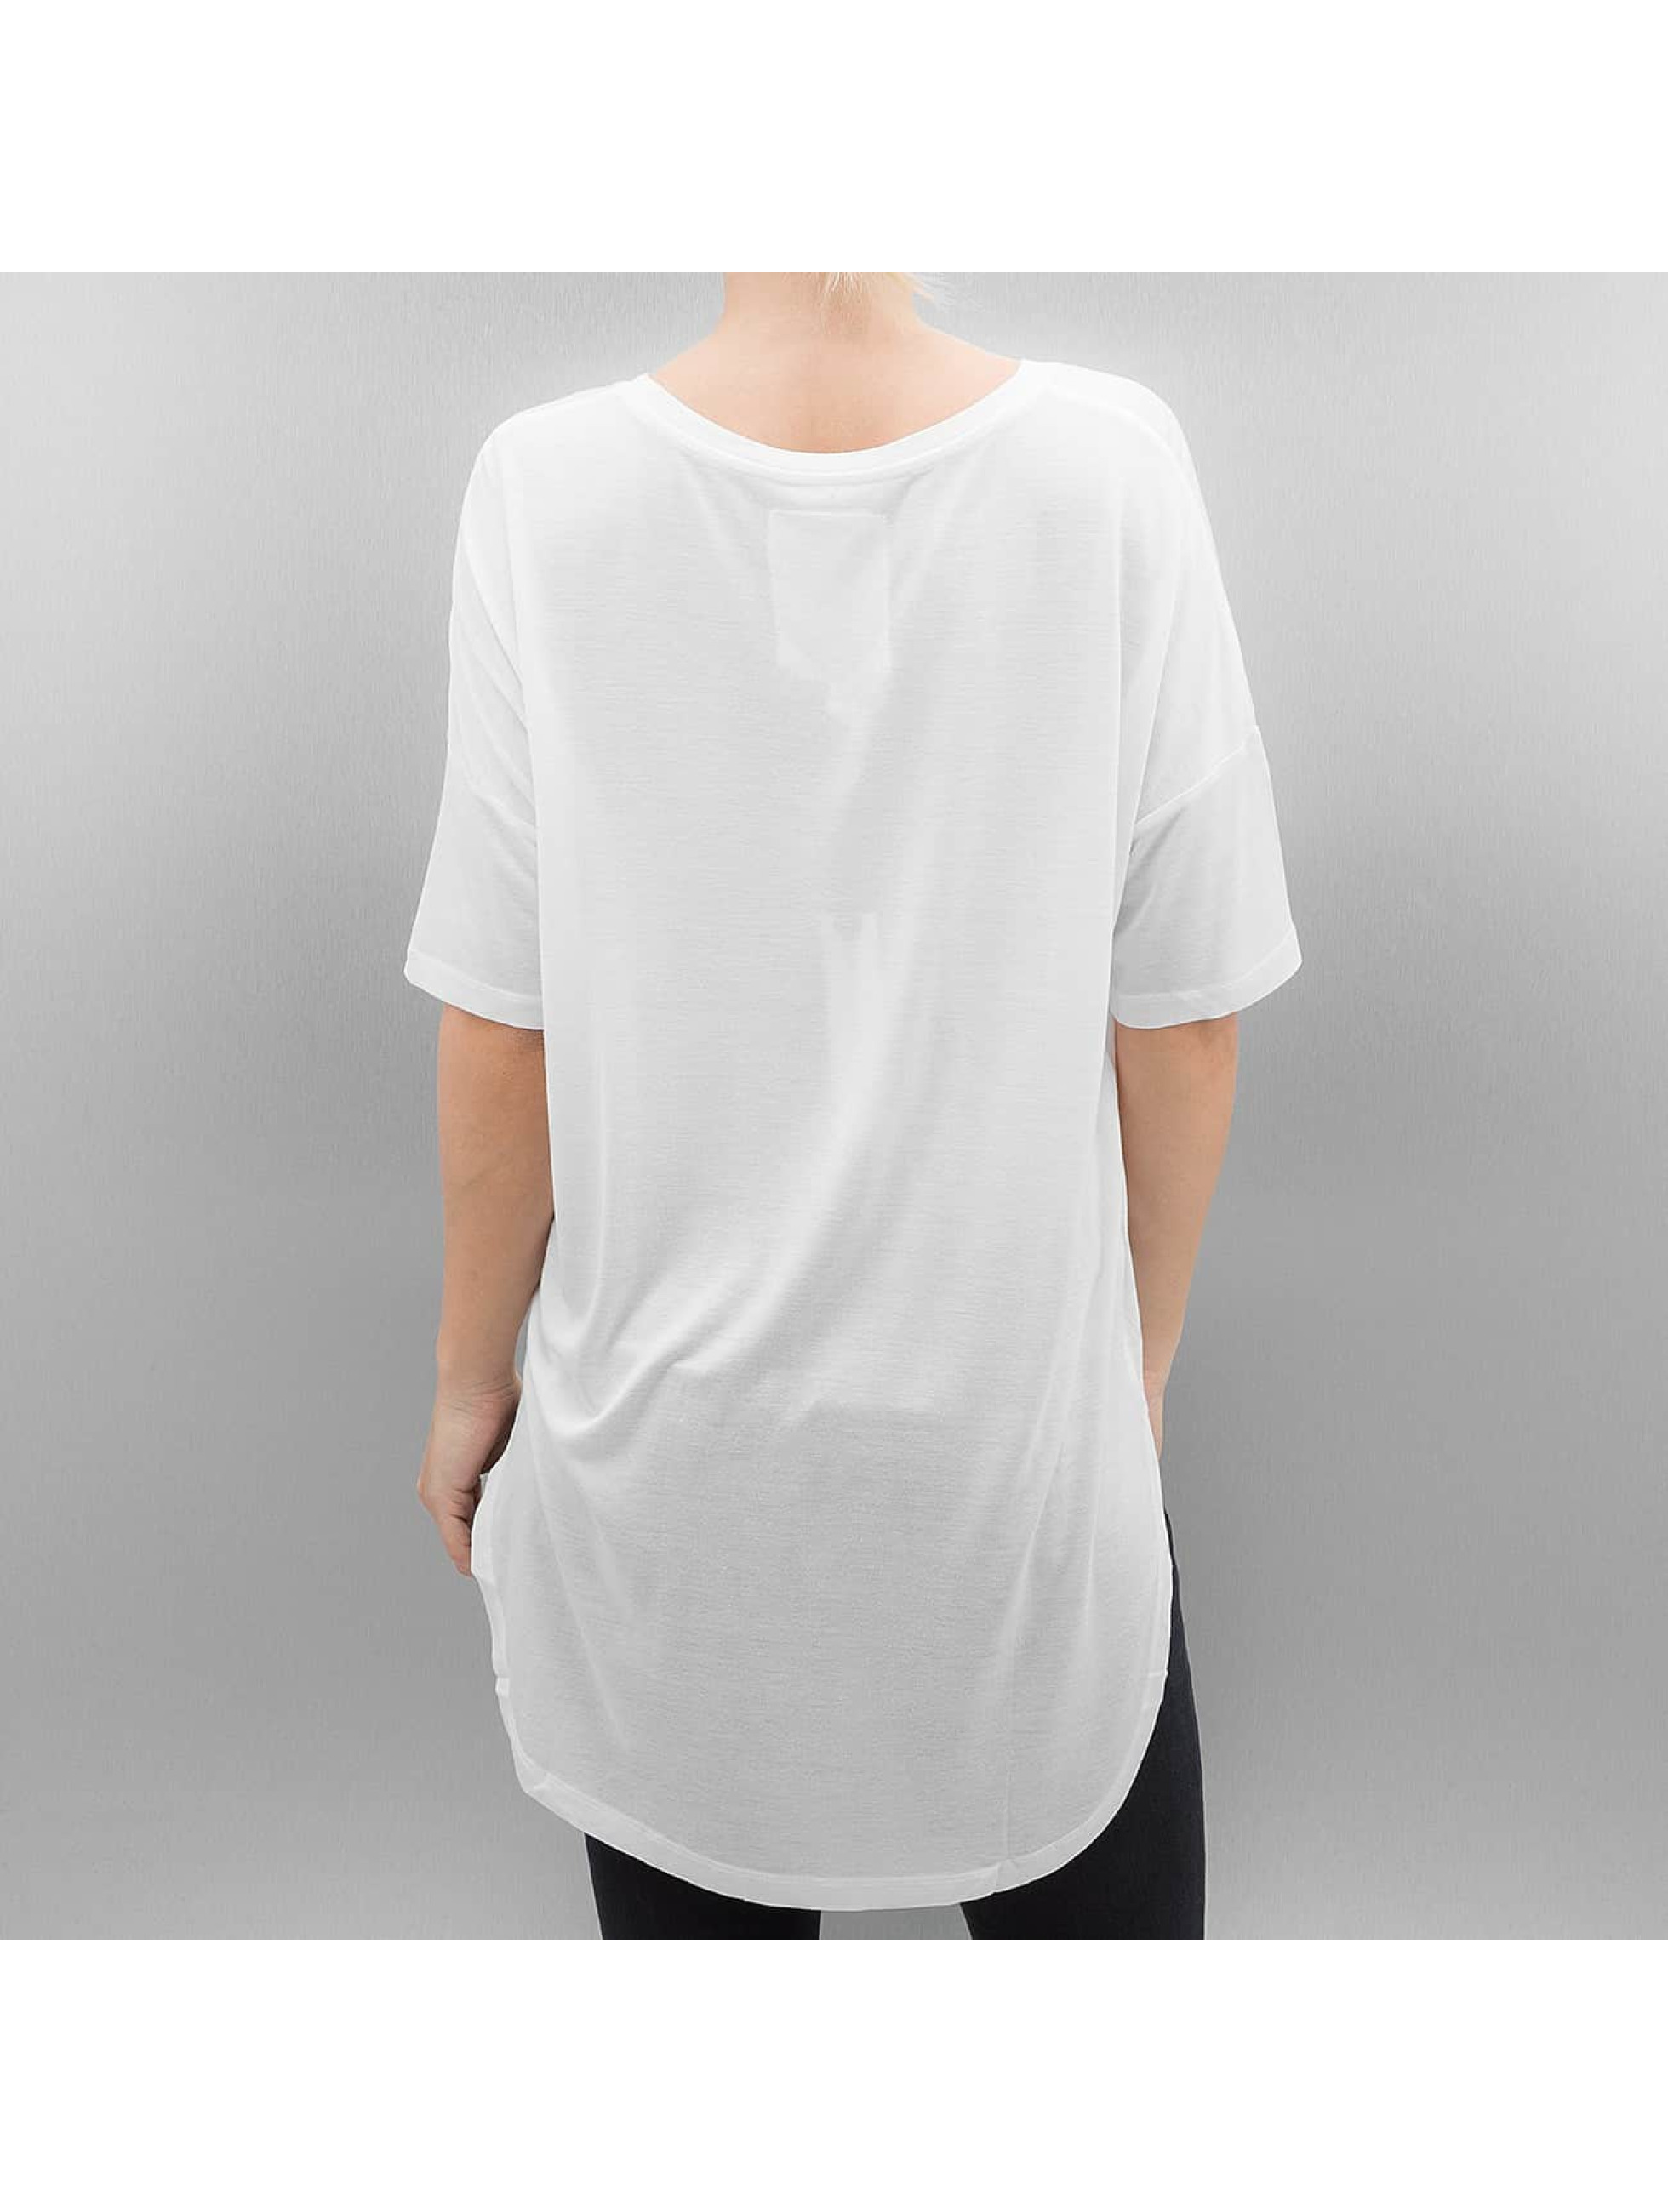 O'NEILL T-Shirt Jacks Base Oversized white